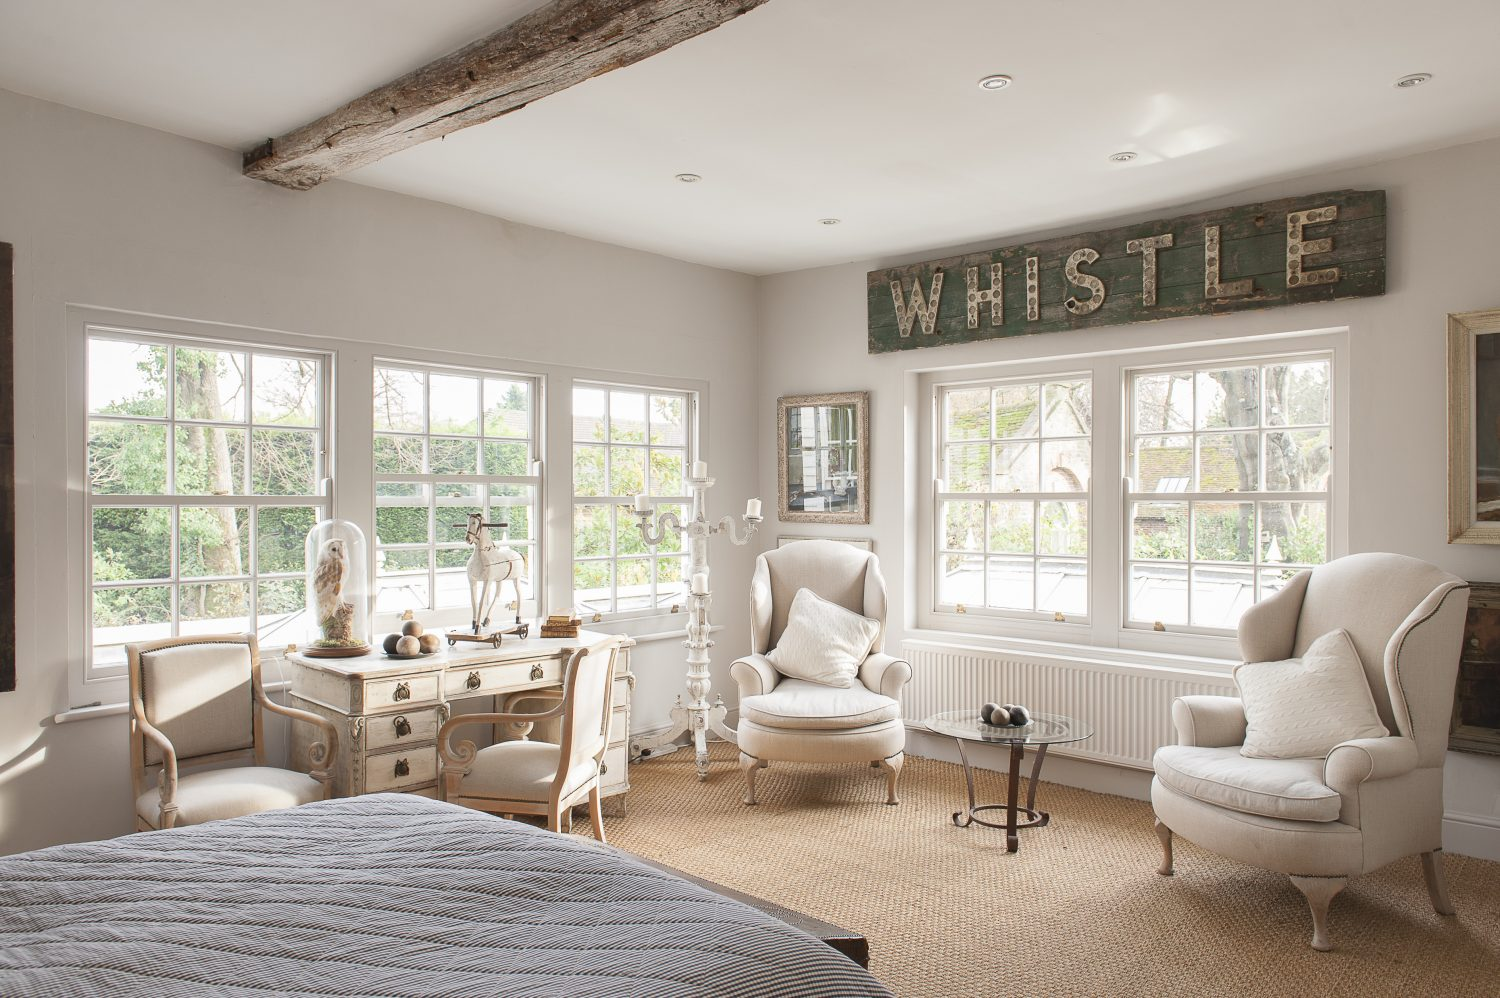 The 'Whistle' lettering on the wall, reminiscent of today's popular illuminated letters is in fact from an old railway station